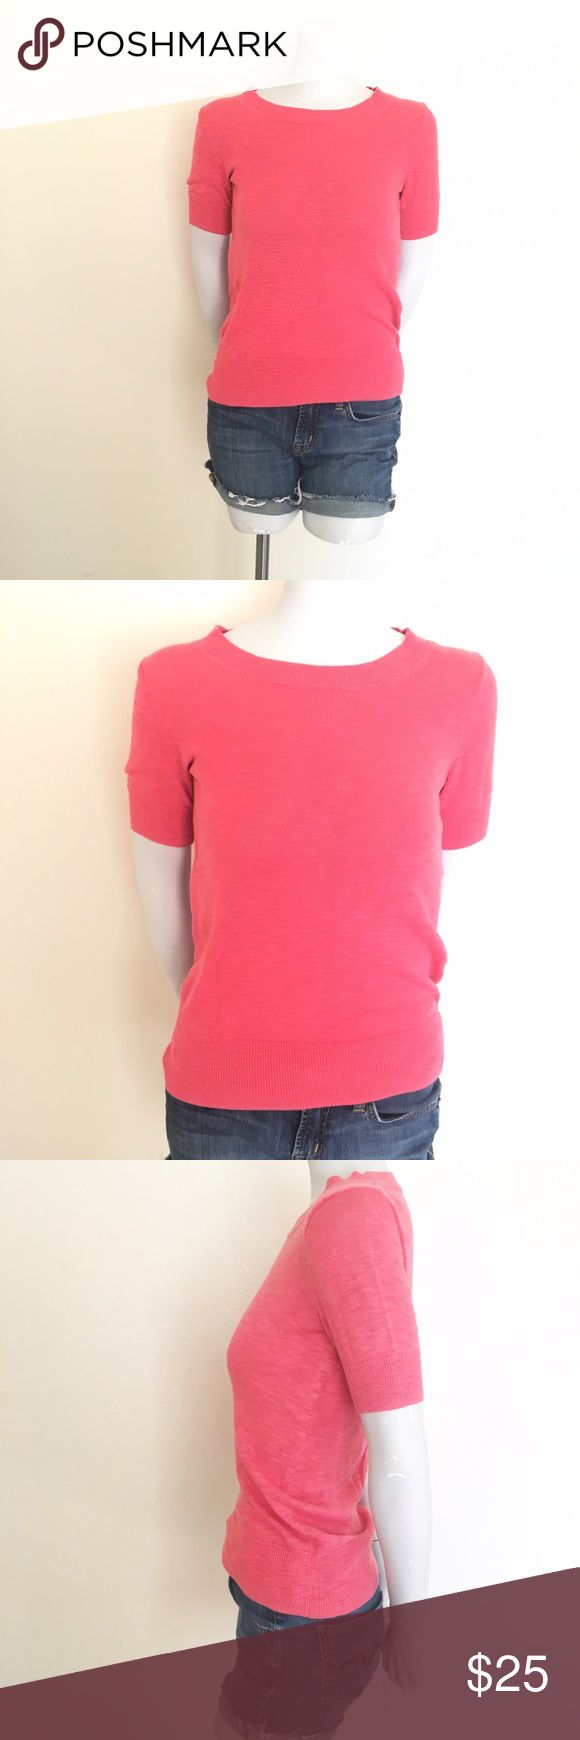 """J. Crew Short Sleeve Cotton Sweater - Size: X-Small  - Material: 100% Cotton  - Condition: EUC  - Color: Coral  - Lined: No  -Stretch: No   *Measurements taken laying flat:  Bust: 16.5"""" Hips: 13""""  Length: 23""""    * Almost all my prices are negotiable and no offer offends me! * J. Crew Sweaters"""